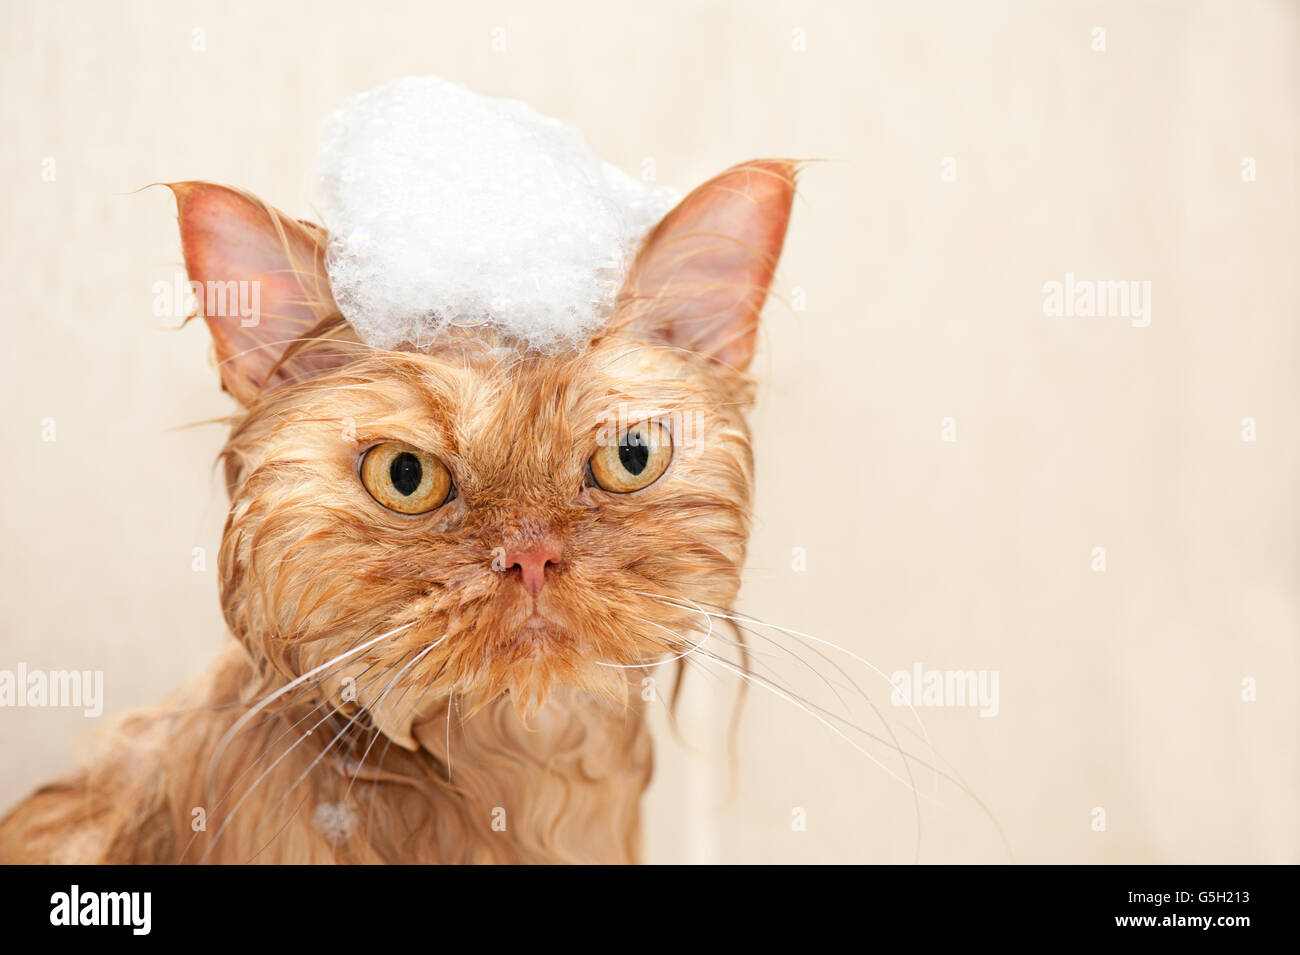 Persian cat taking a bath with foam. - Stock Image